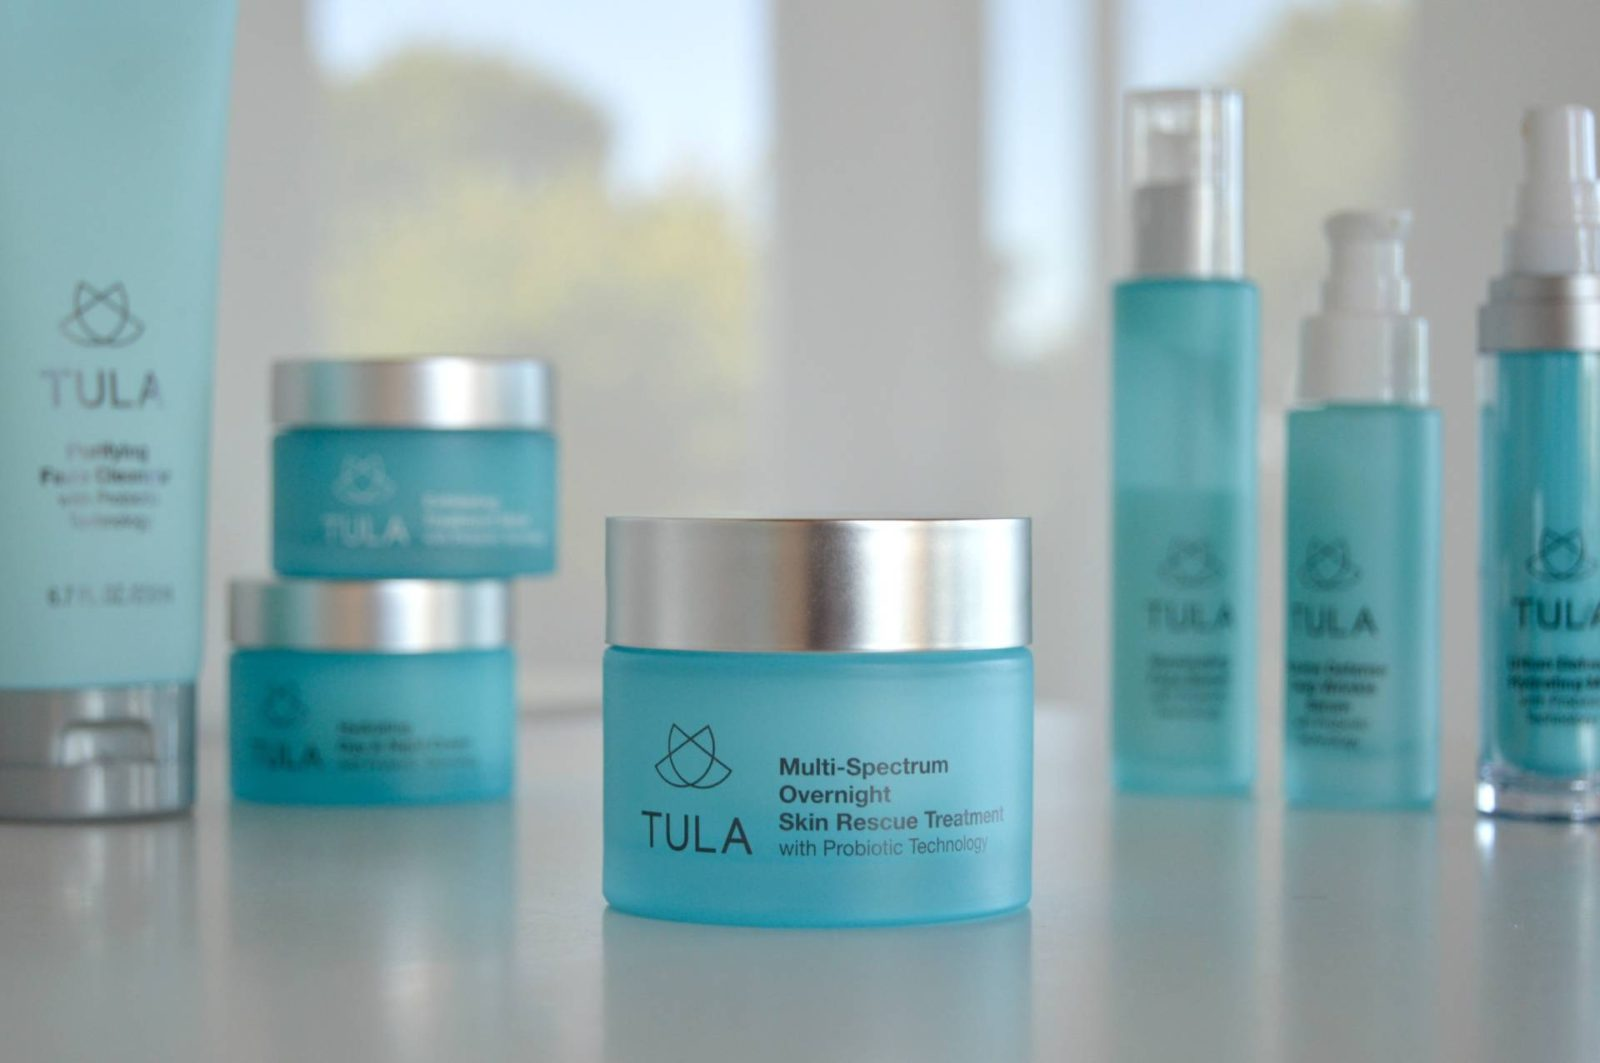 TULA Multi-Spectrum Overnight Skin Rescue Treatment Launches Today & a very $pecial offer inside…